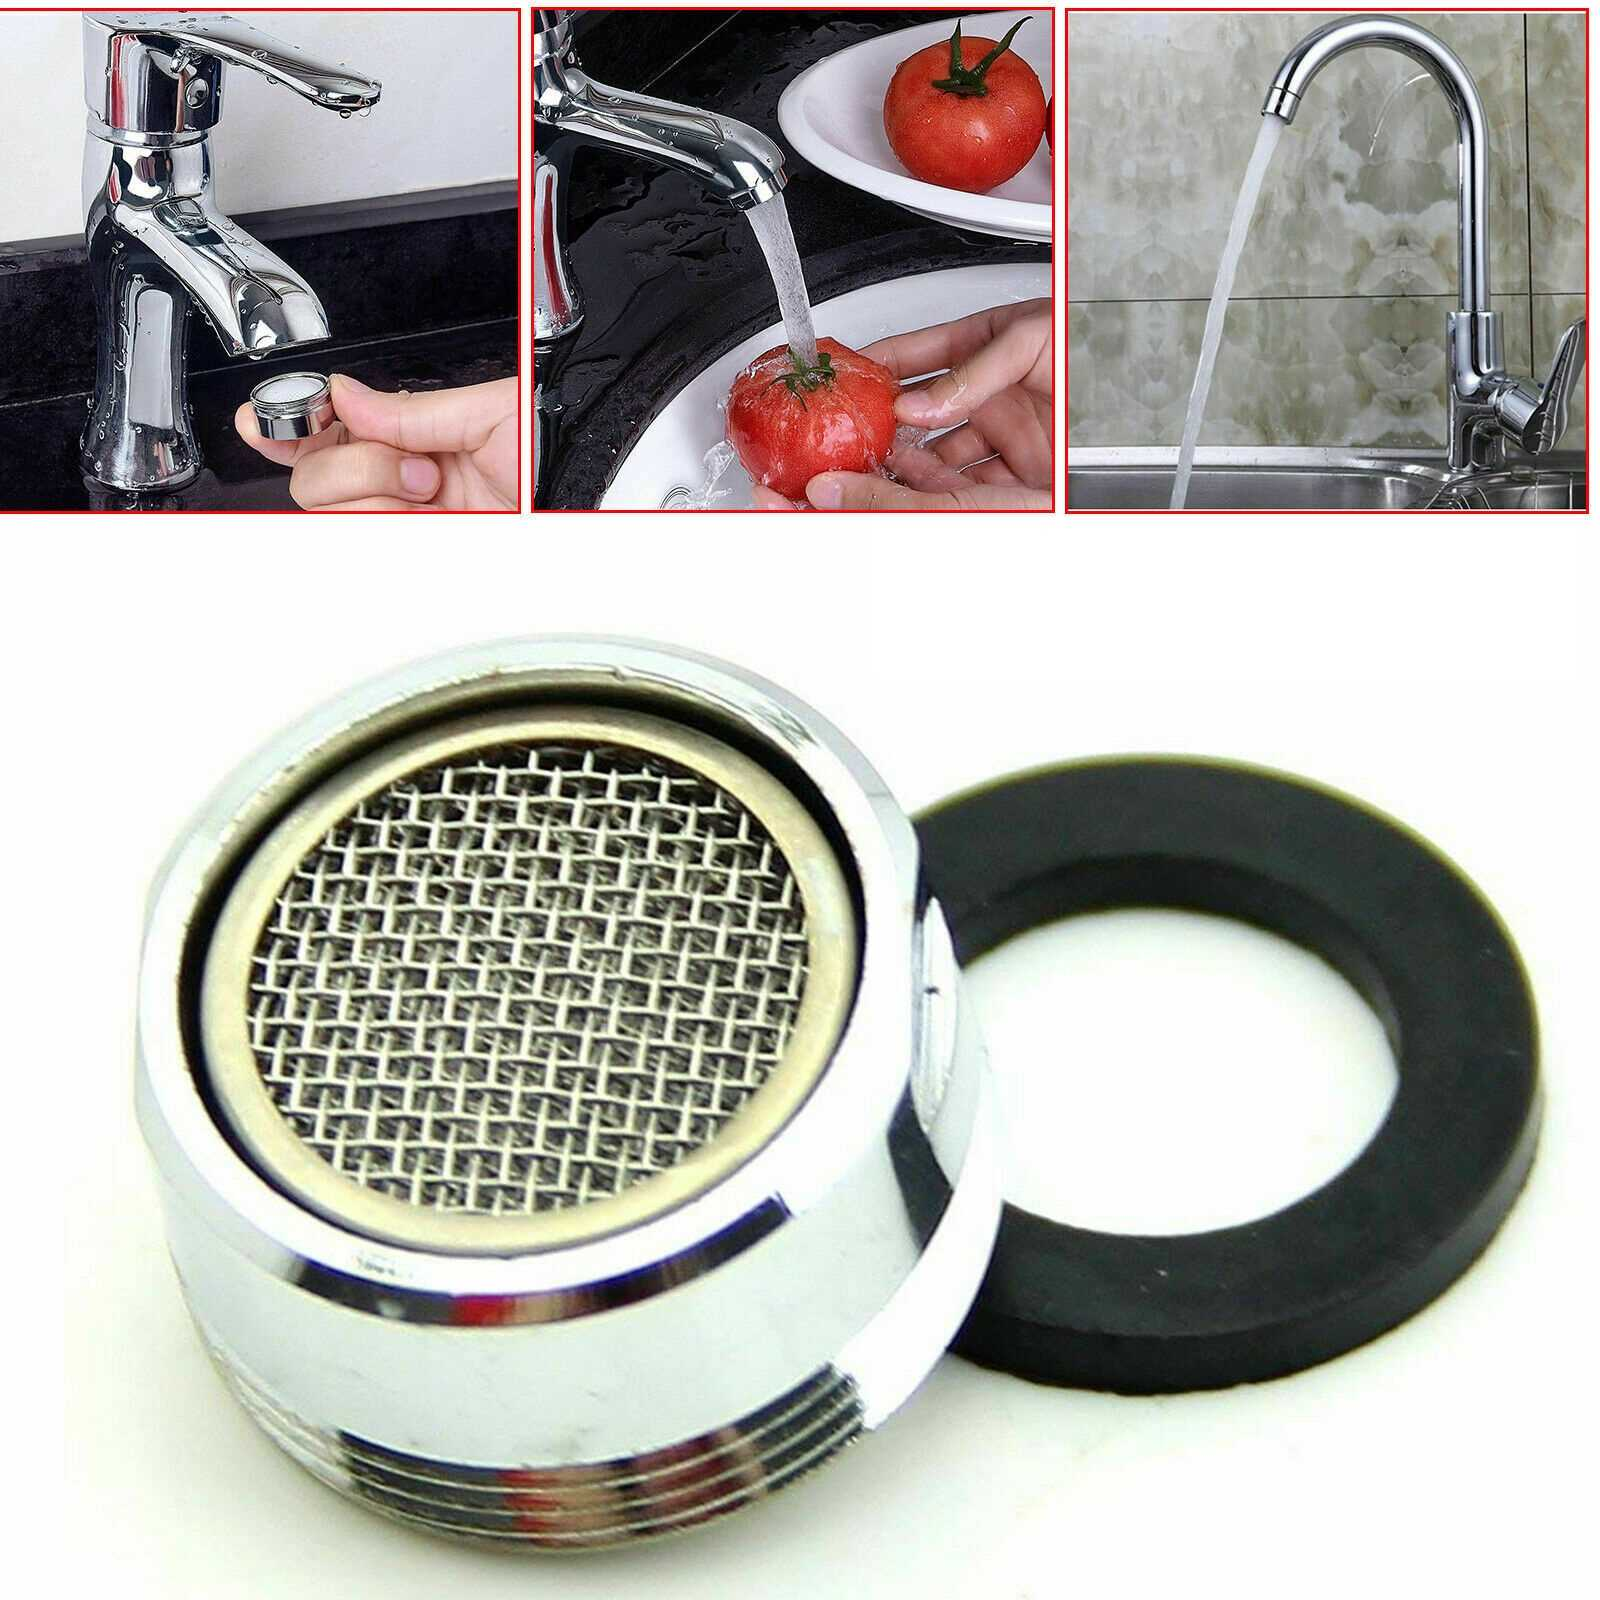 28Mm Male Tap Aerator Water Saving Faucet Nozzle Spout End Diffuser Filter